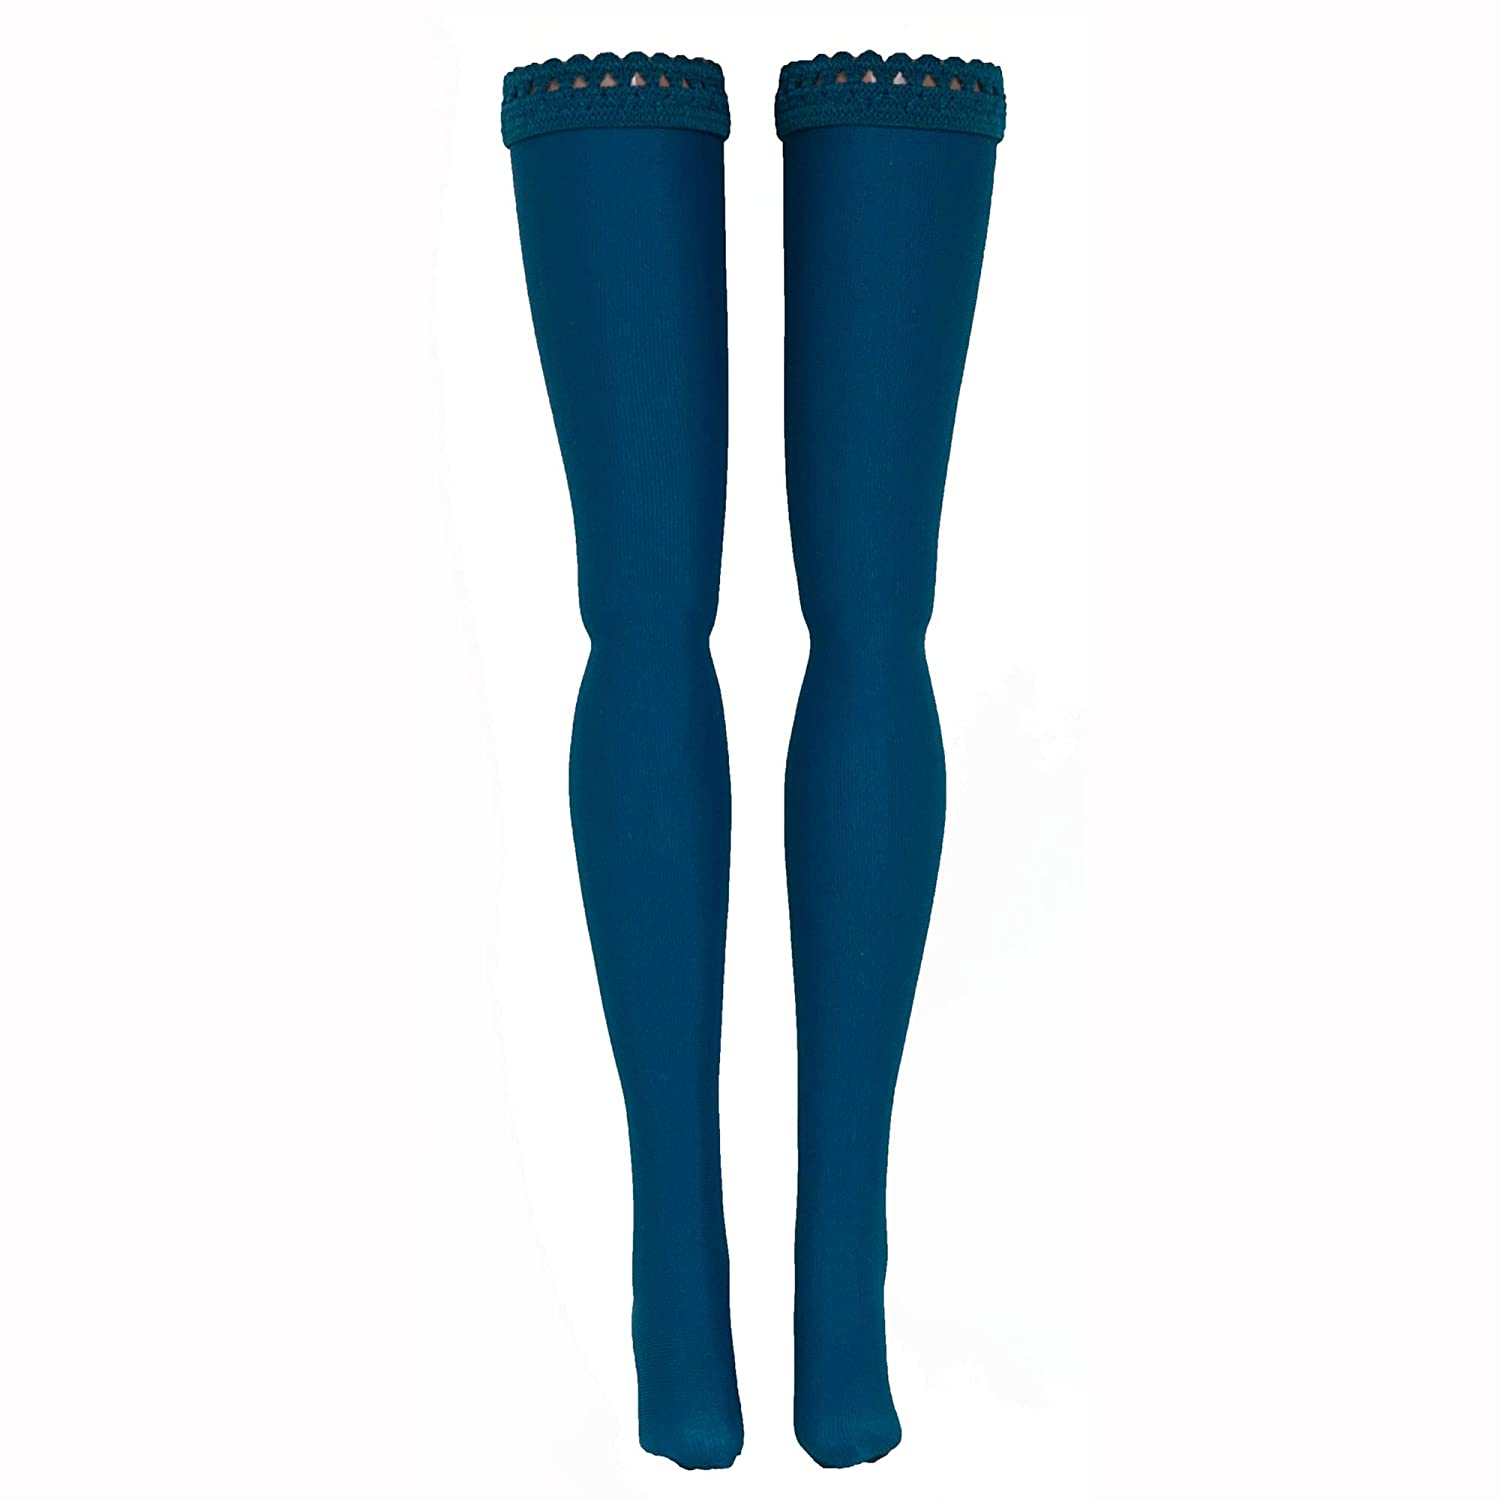 Lissy etc Cissette Dark Blue Doll Stockings to fit Madame Alexander dolls such as Cissy